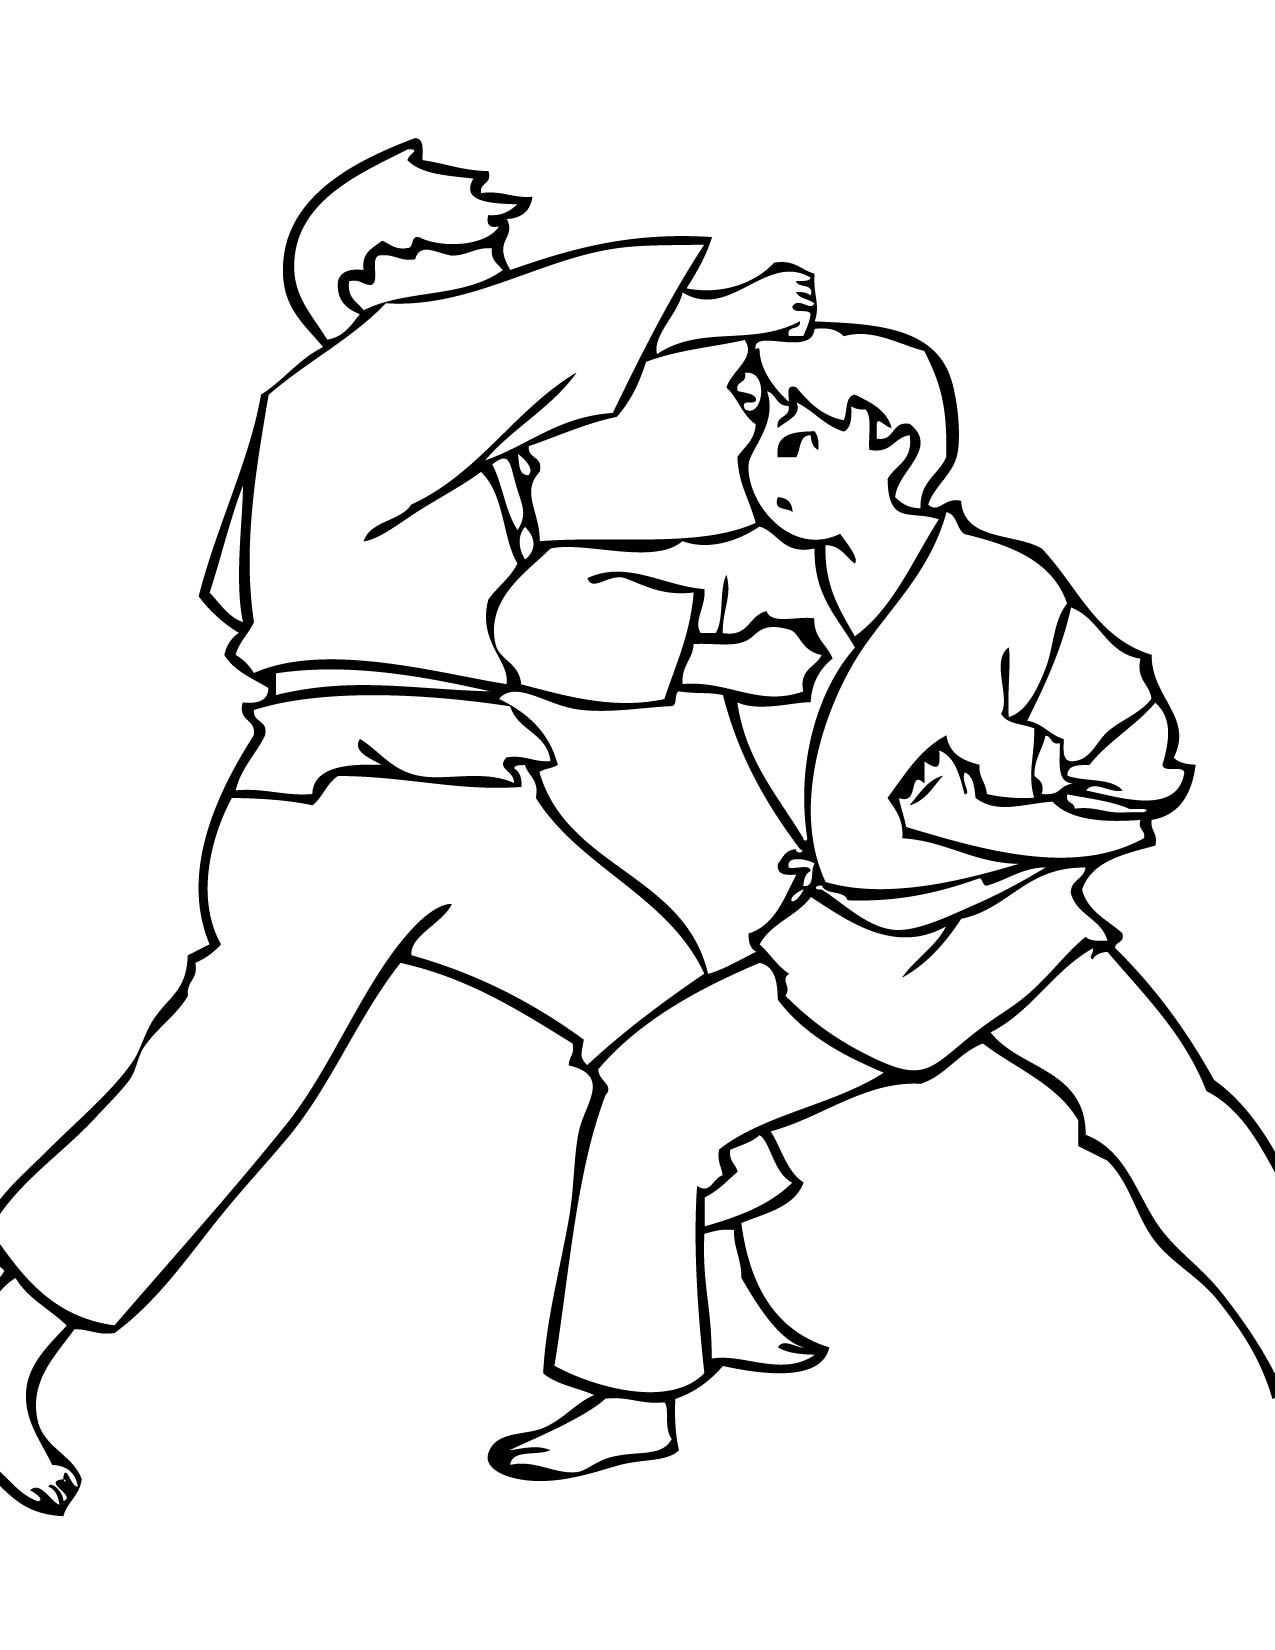 14 Martial Arts Coloring Pages